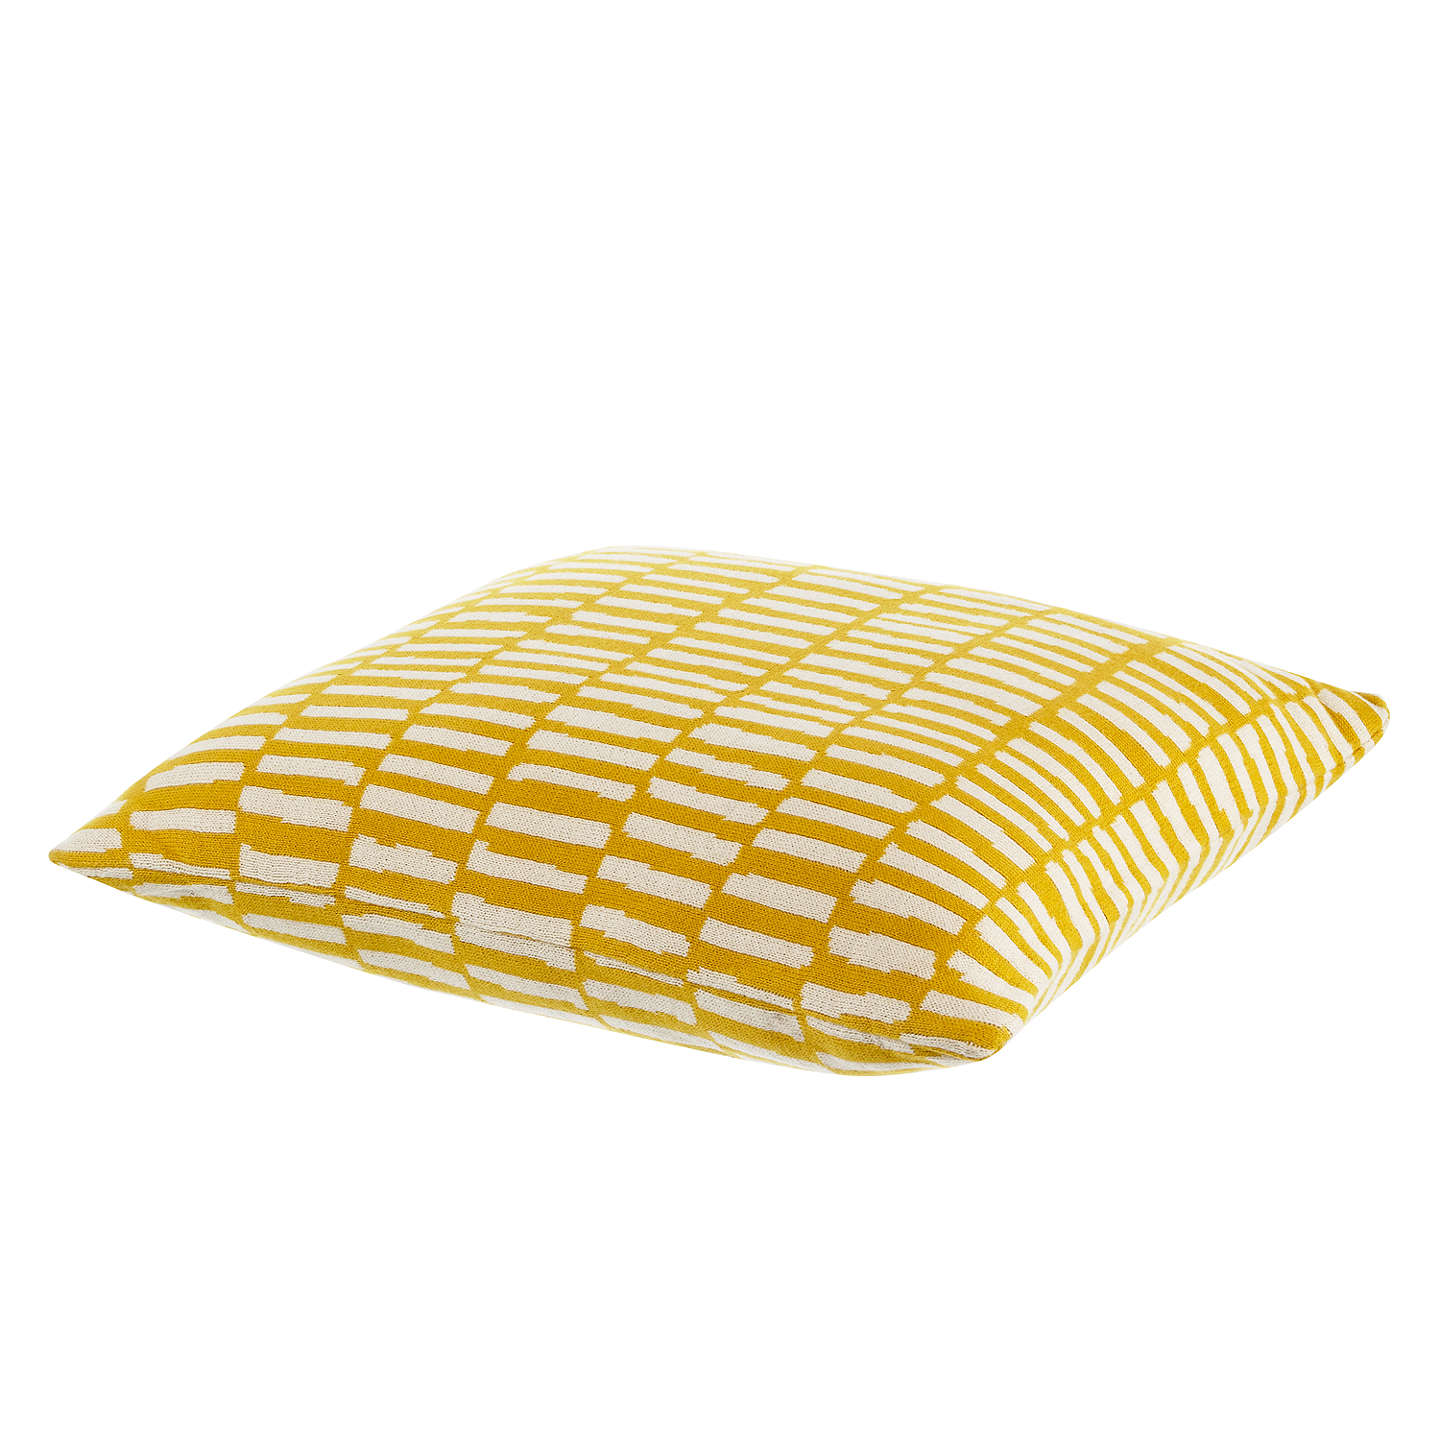 BuyMissPrint Home Dashes Cushion, Yellow Online at johnlewis.com